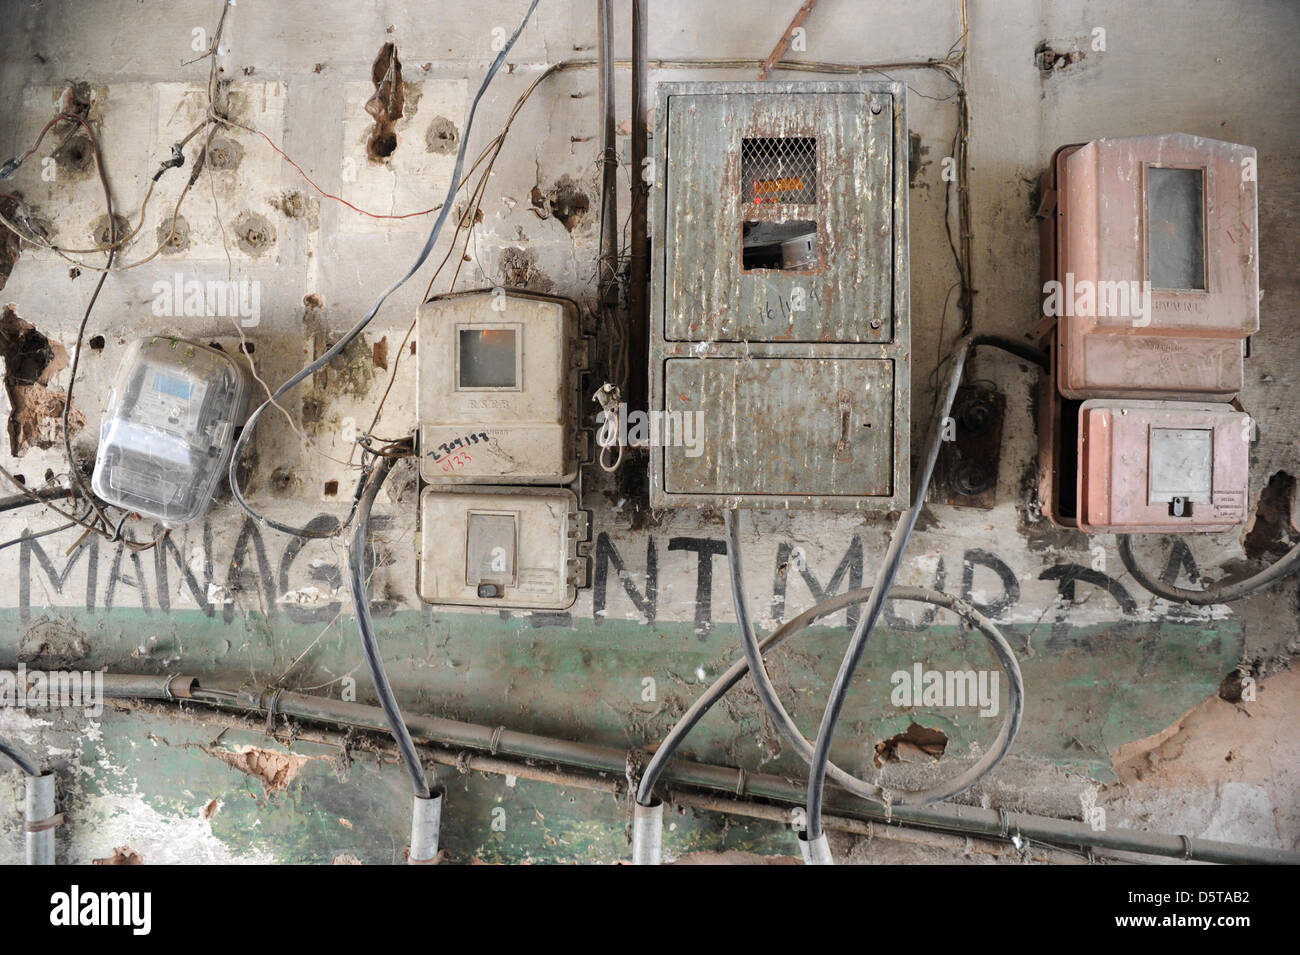 Old and decaying electric meters stand in the entrance to a house